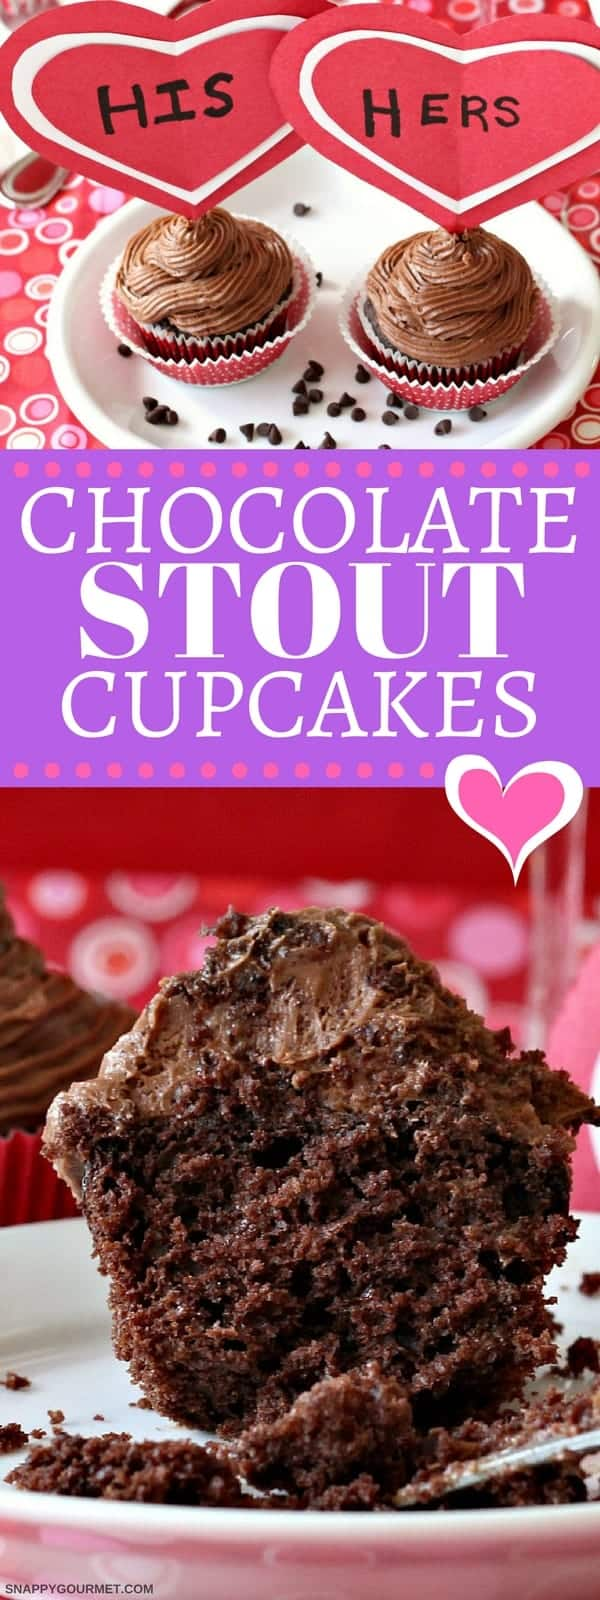 Chocolate Stout Cupcakes Recipe - easy chocolate cupcake recipe with beer!